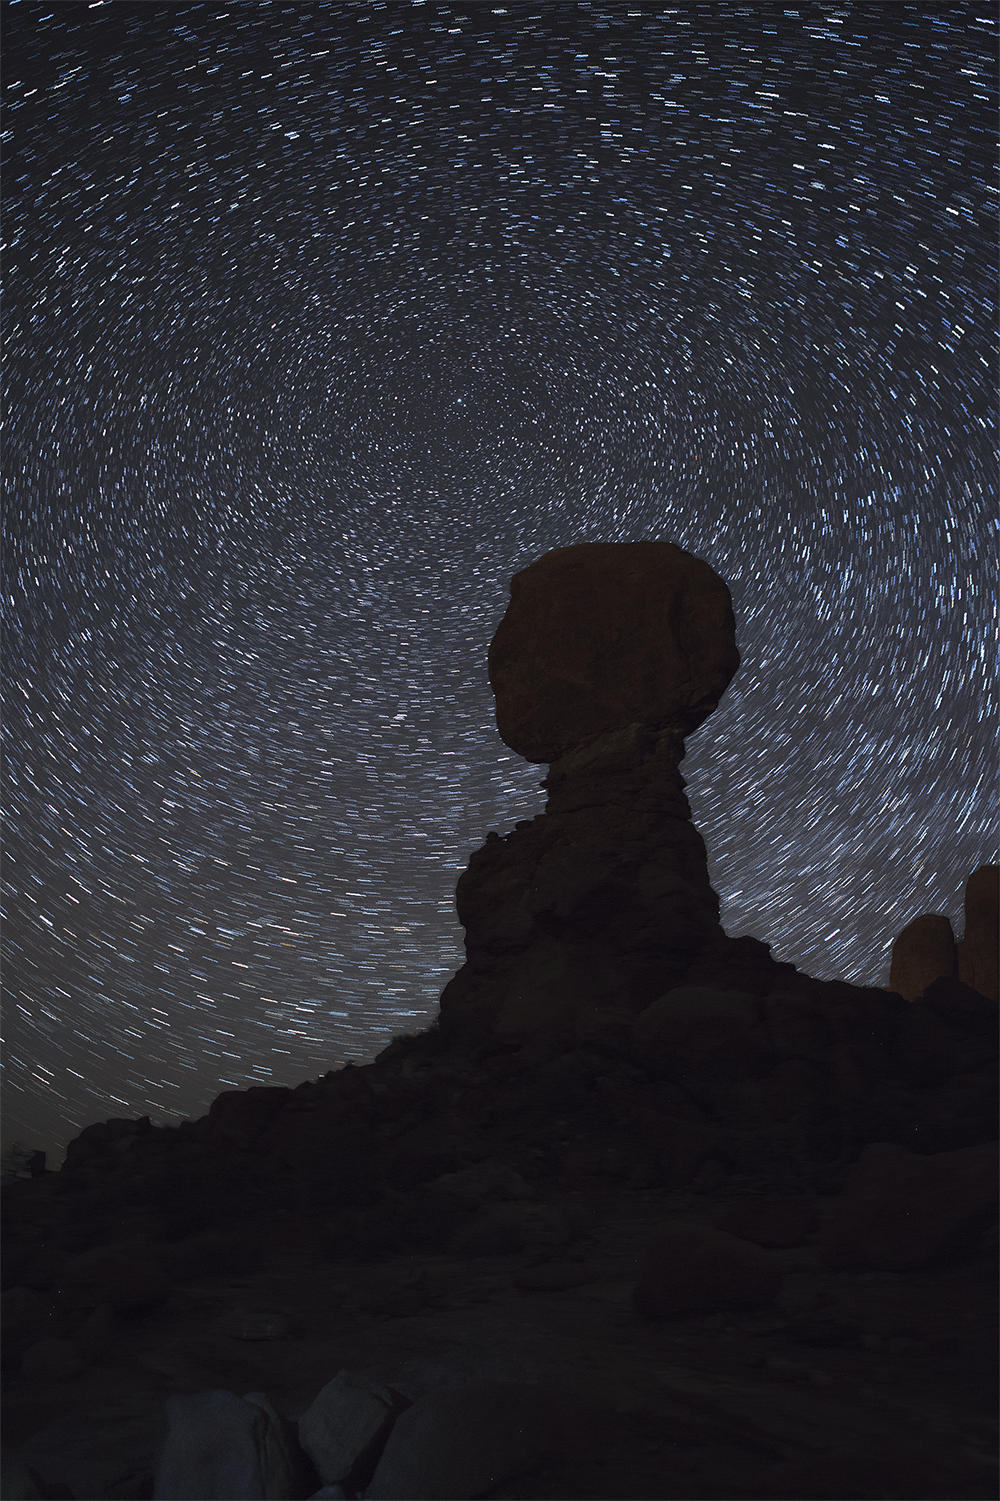 arches national park star trail photography